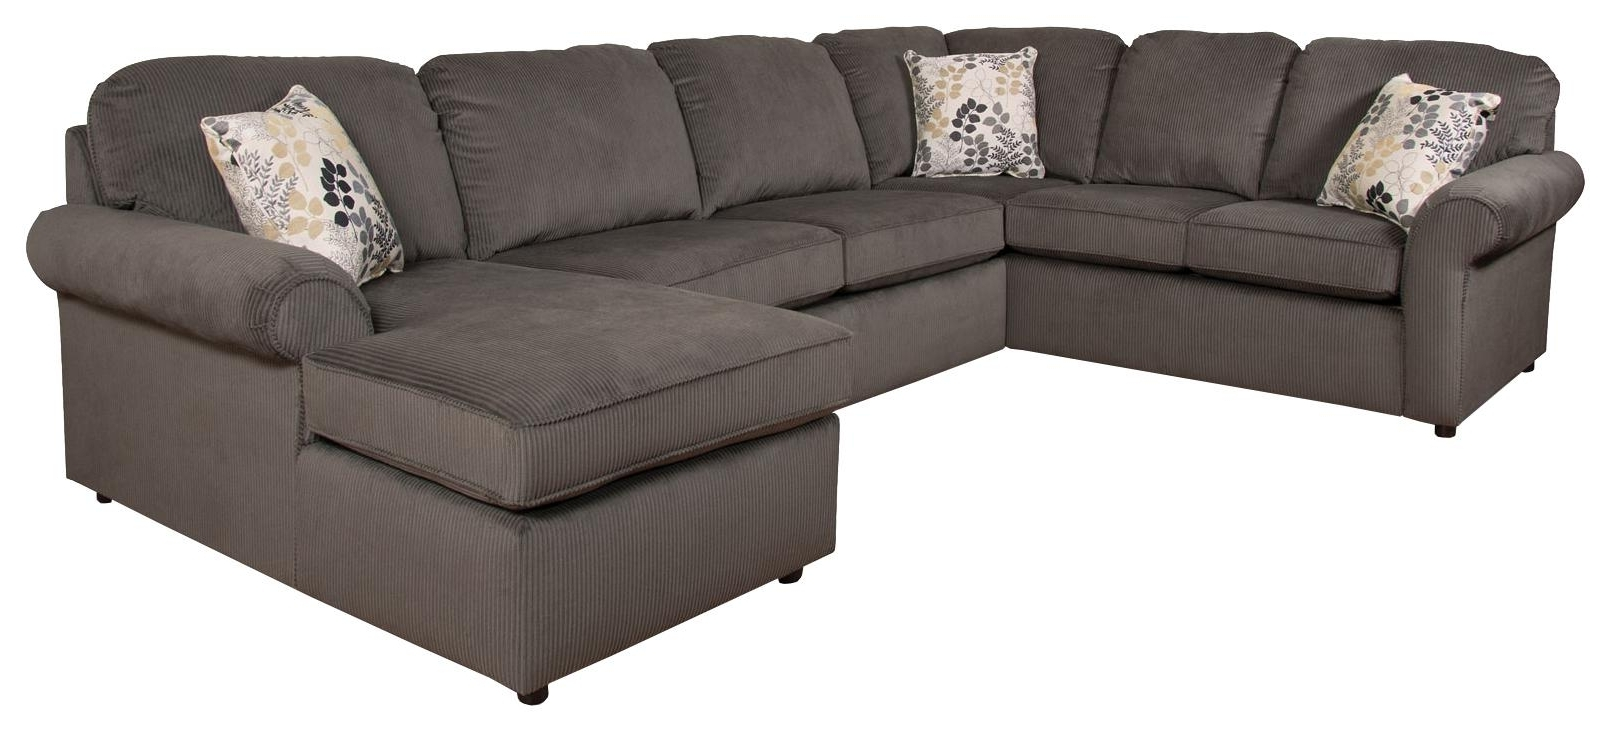 England Sectional Sofas With Regard To Latest England Malibu 5 6 Seat (right Side) Chaise Sectional Sofa (View 3 of 20)